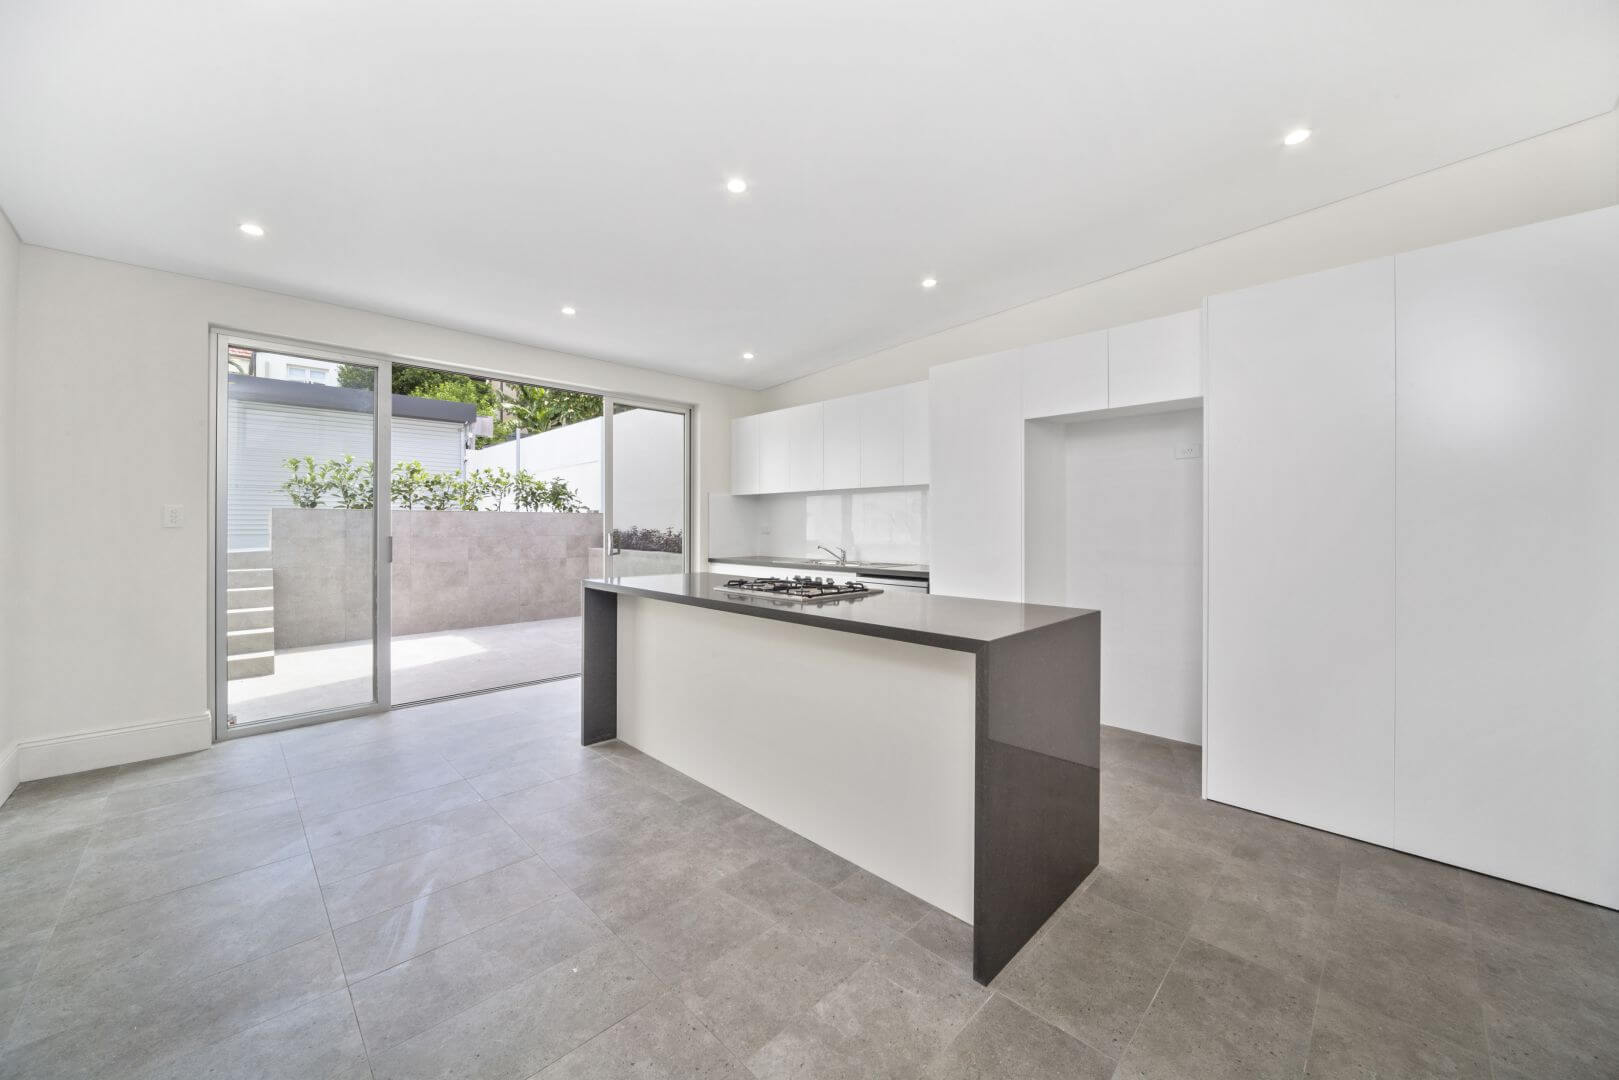 10 Bellevue Street - Kitchen